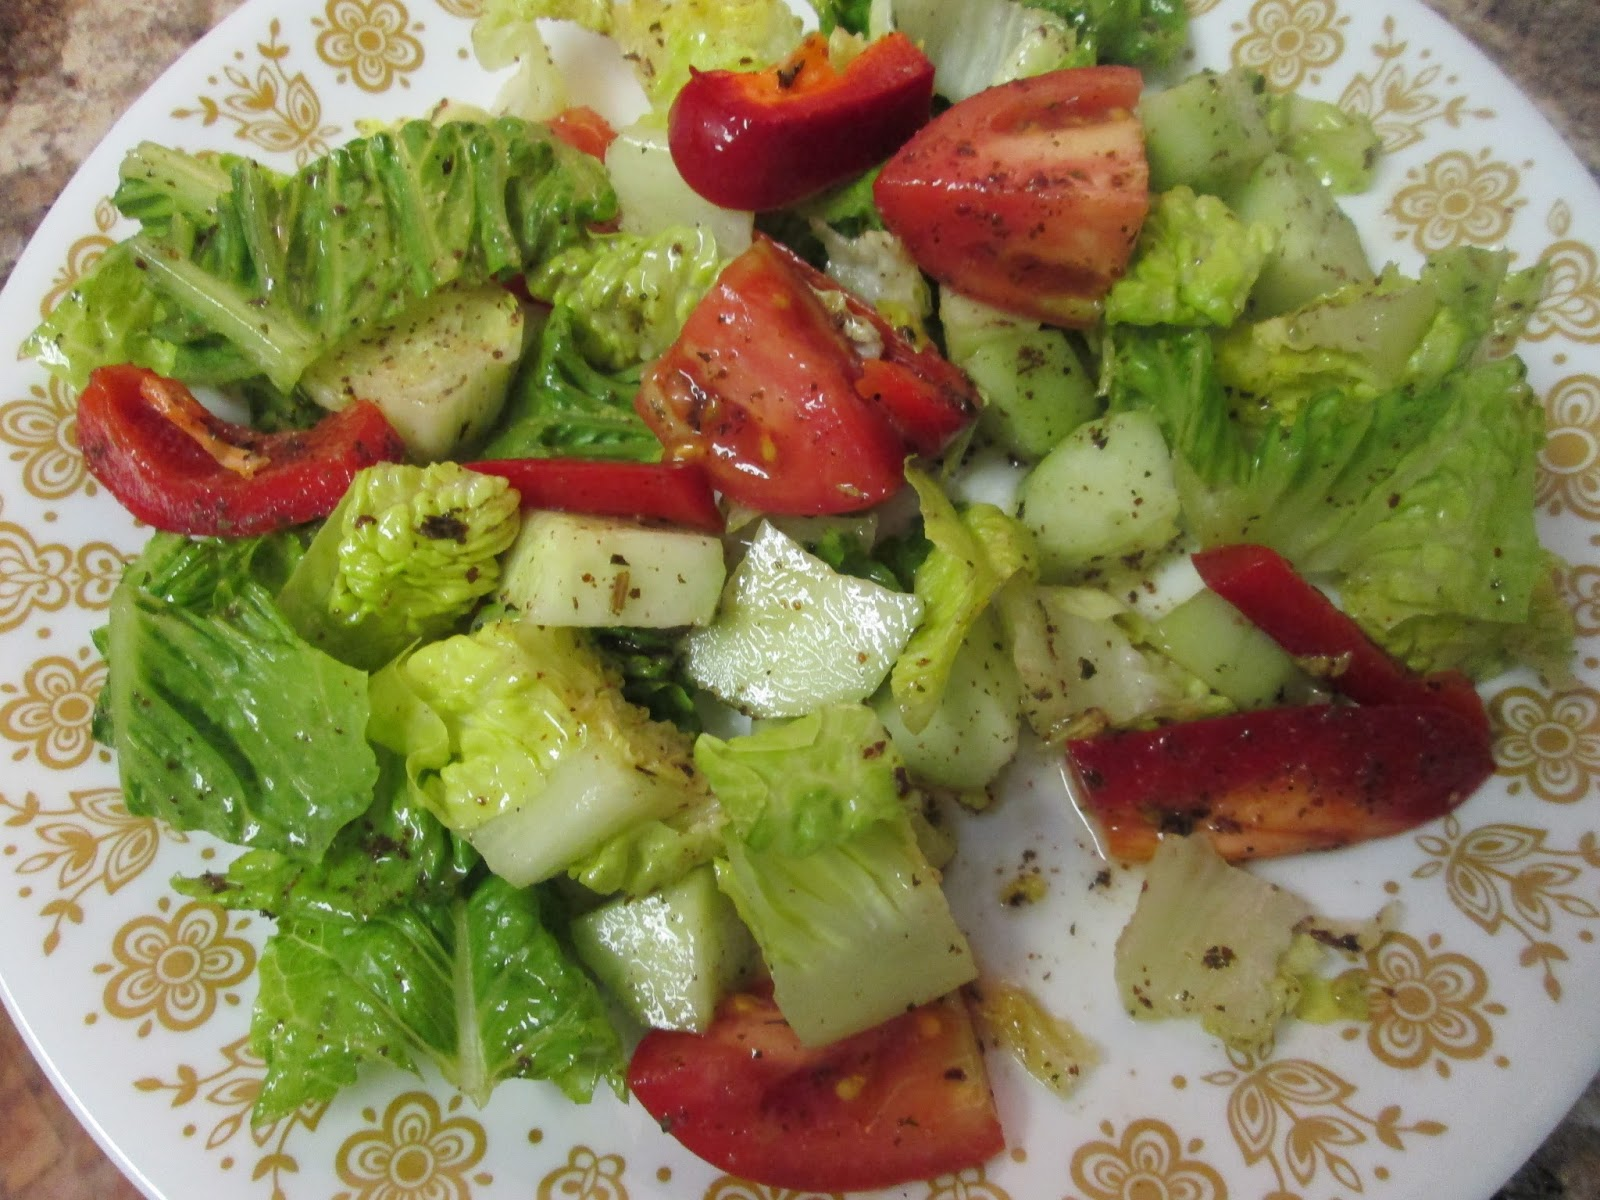 ... that is fattoush salad fattoush is a delicious lebanese salad topped